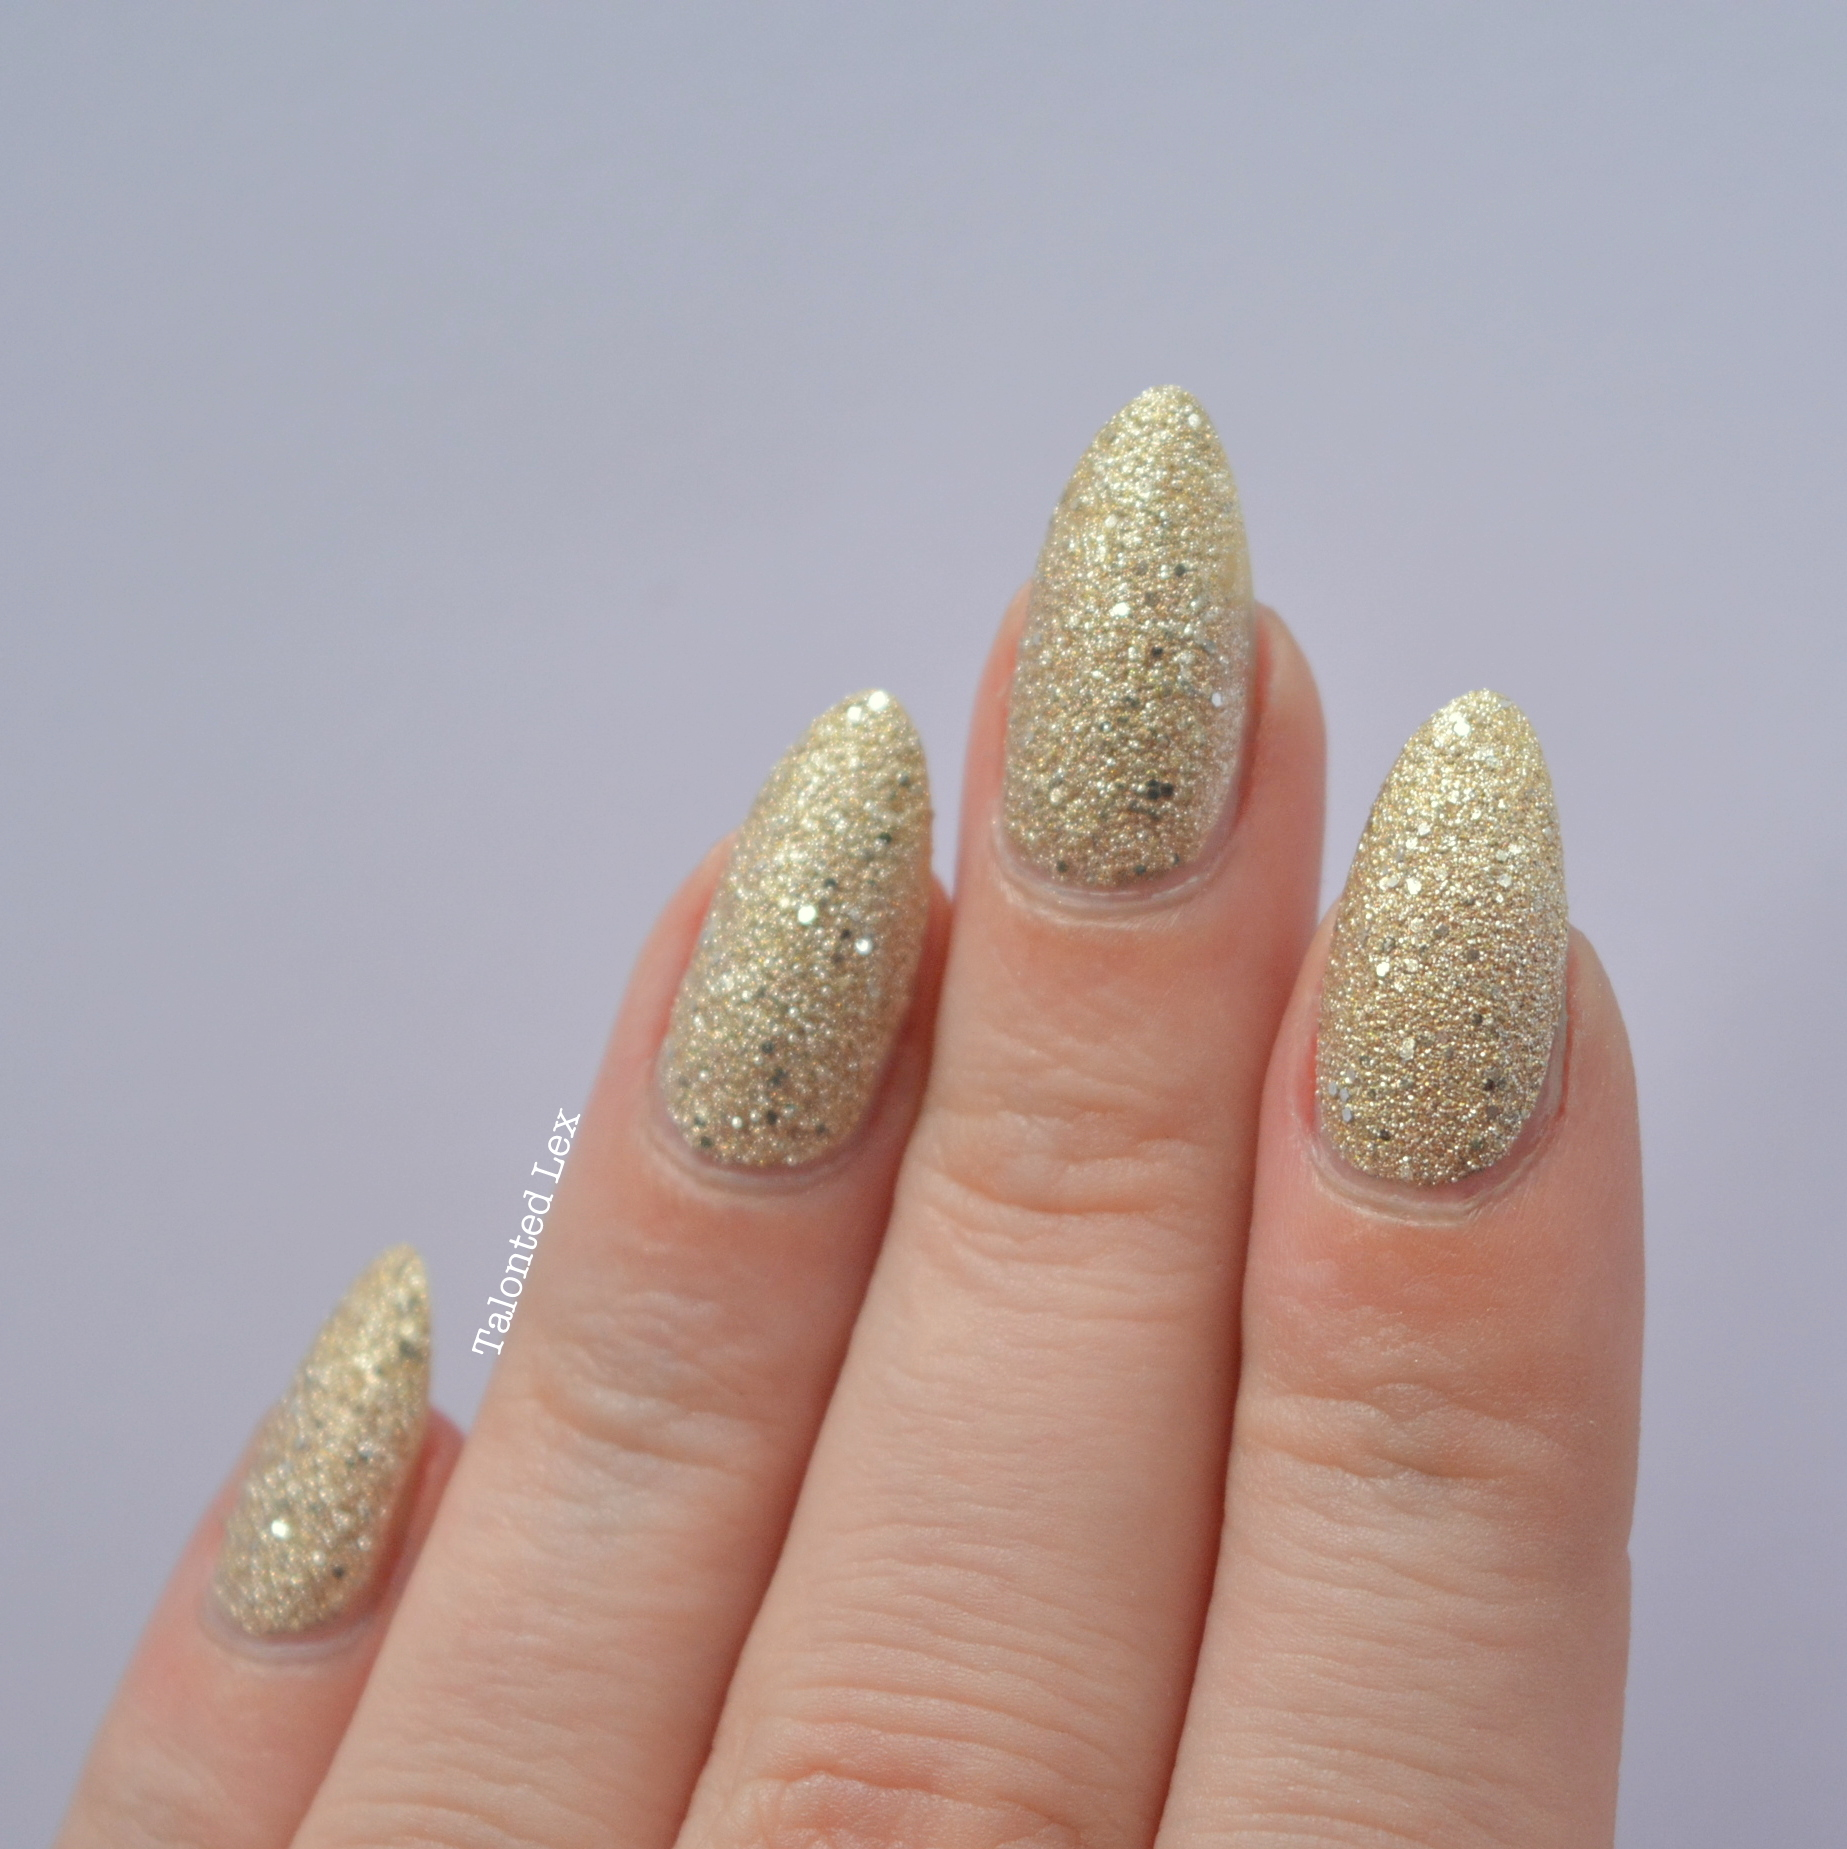 Madam-Glam-Sandy-Beach-Nail-varnish-review-Talonted-Lex-2